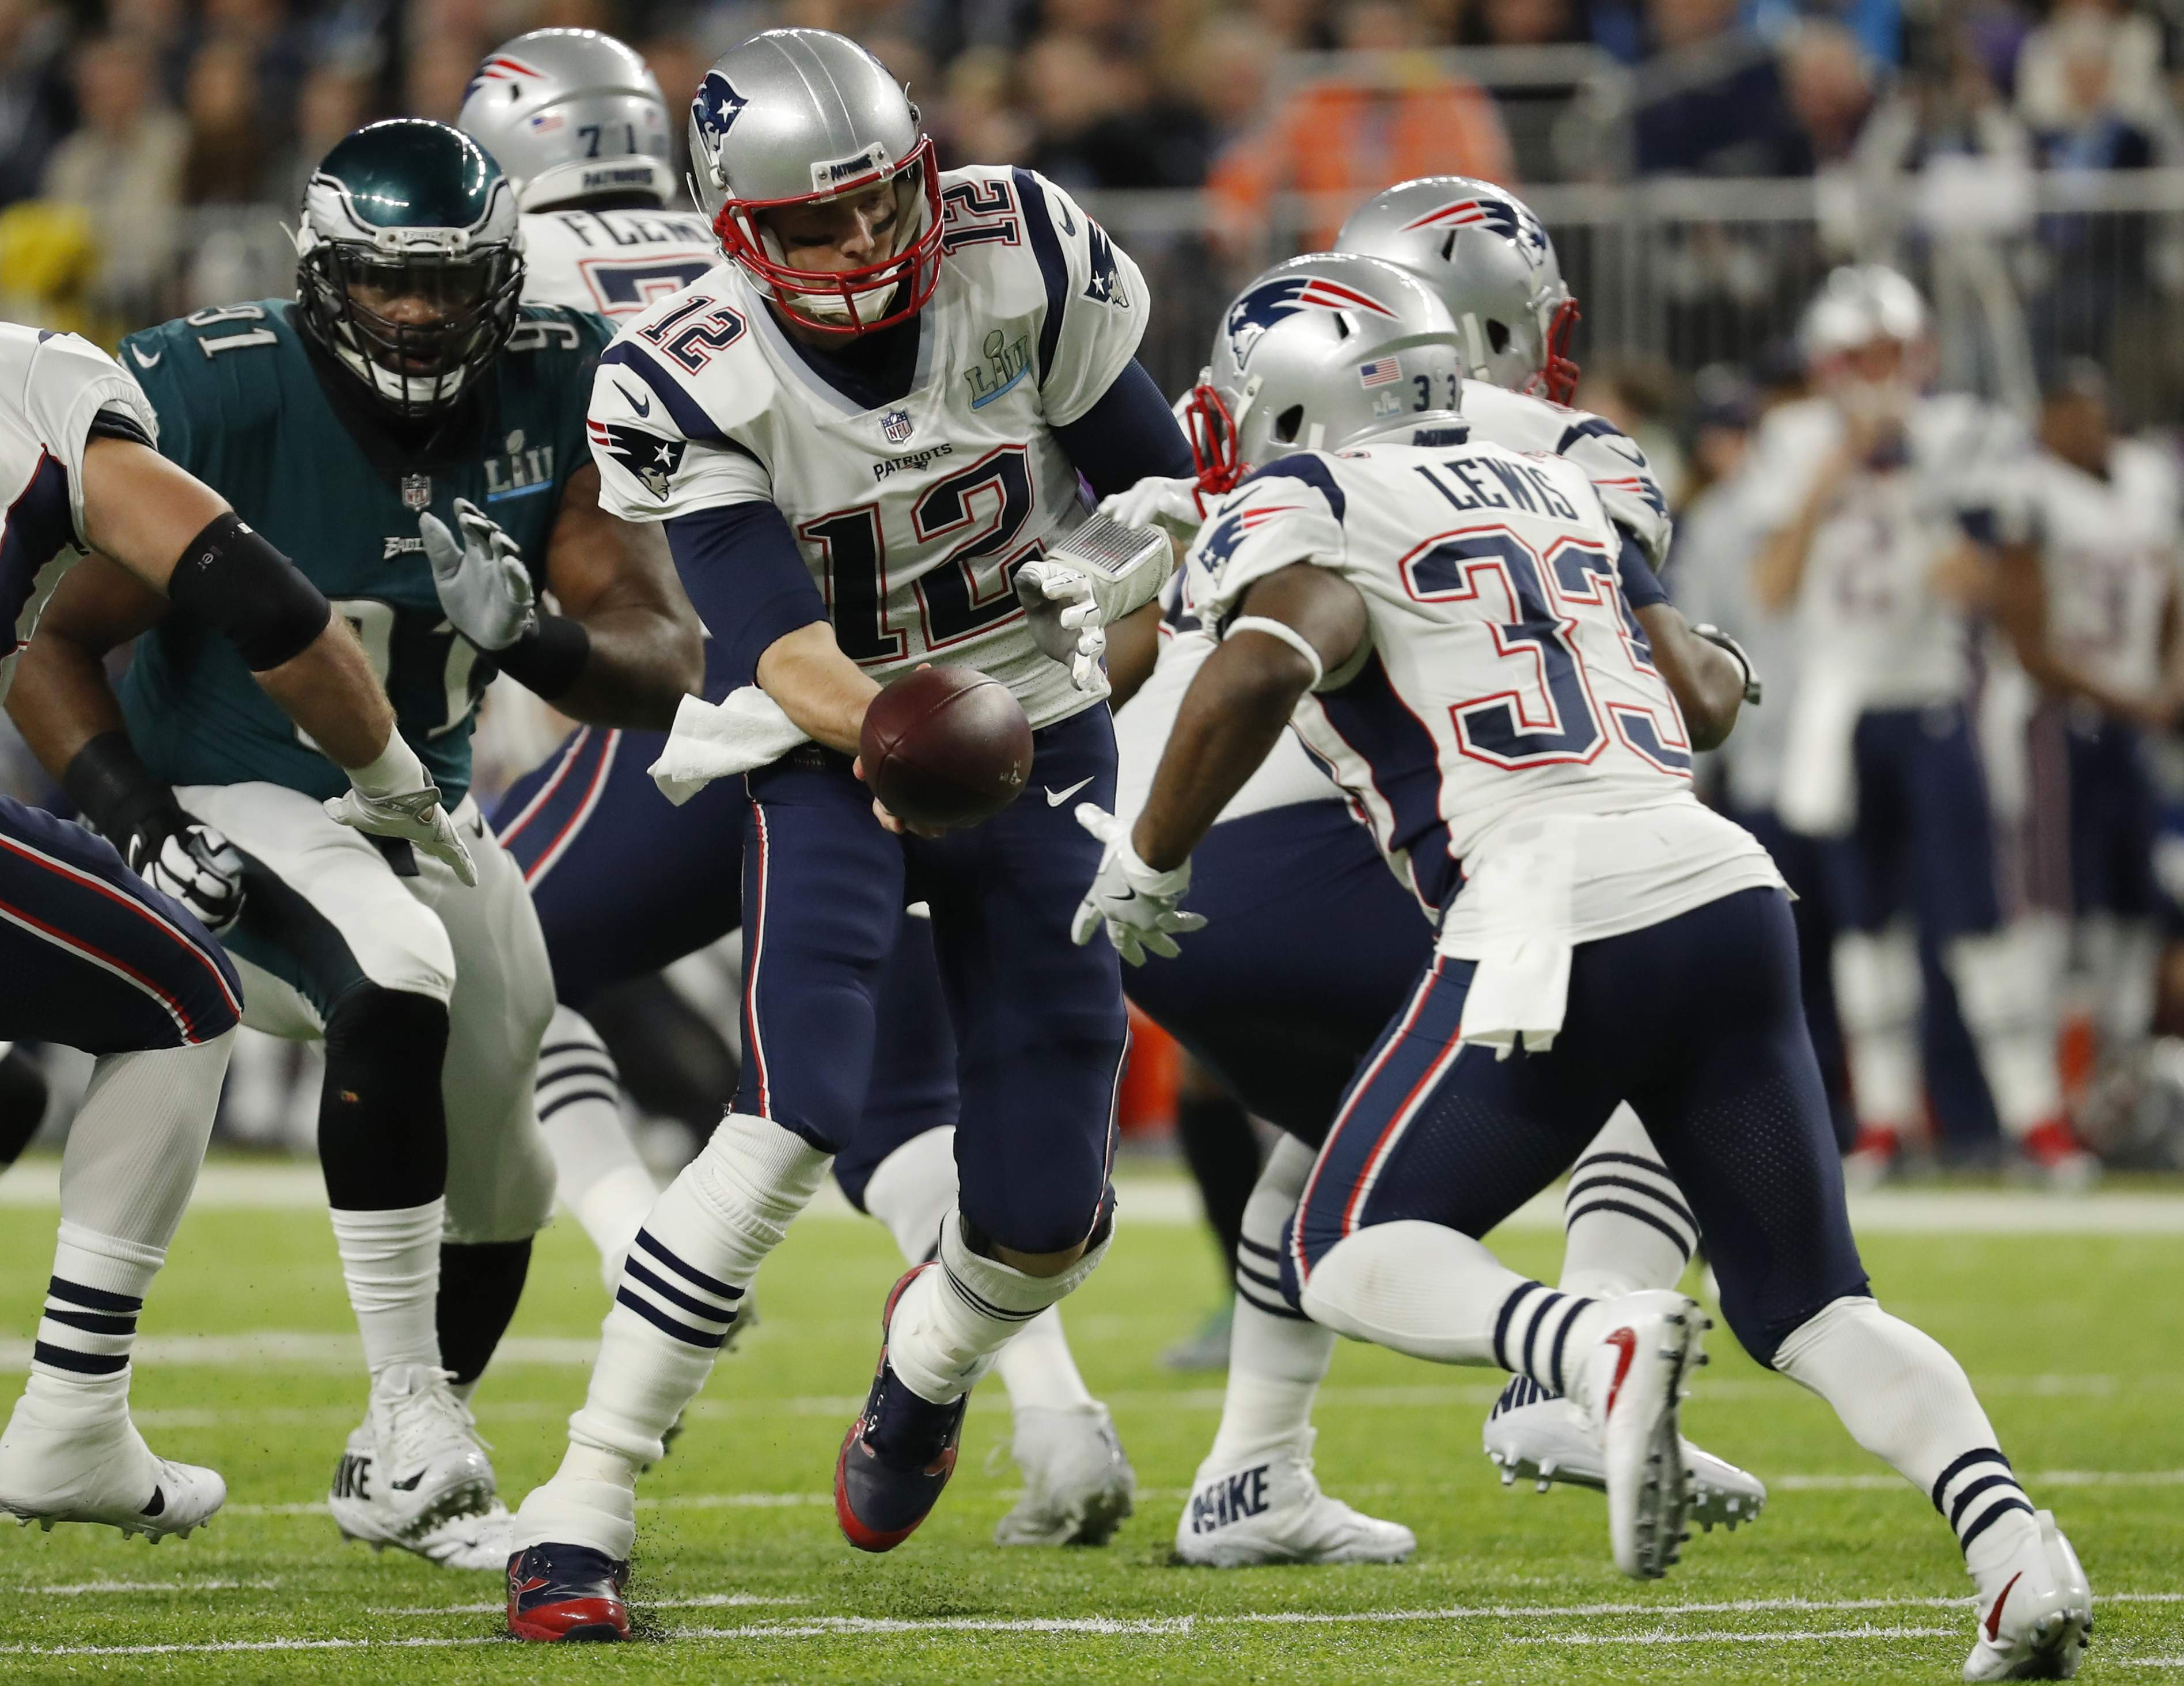 New England Patriots quarterback Tom Brady (12) hands the ball to running back Dion Lewis (33), during the first half of the NFL Super Bowl 52 football game against the Philadelphia Eagles, Sunday, Feb. 4, 2018, in Minneapolis. (AP Photo/Charlie Neibergall)